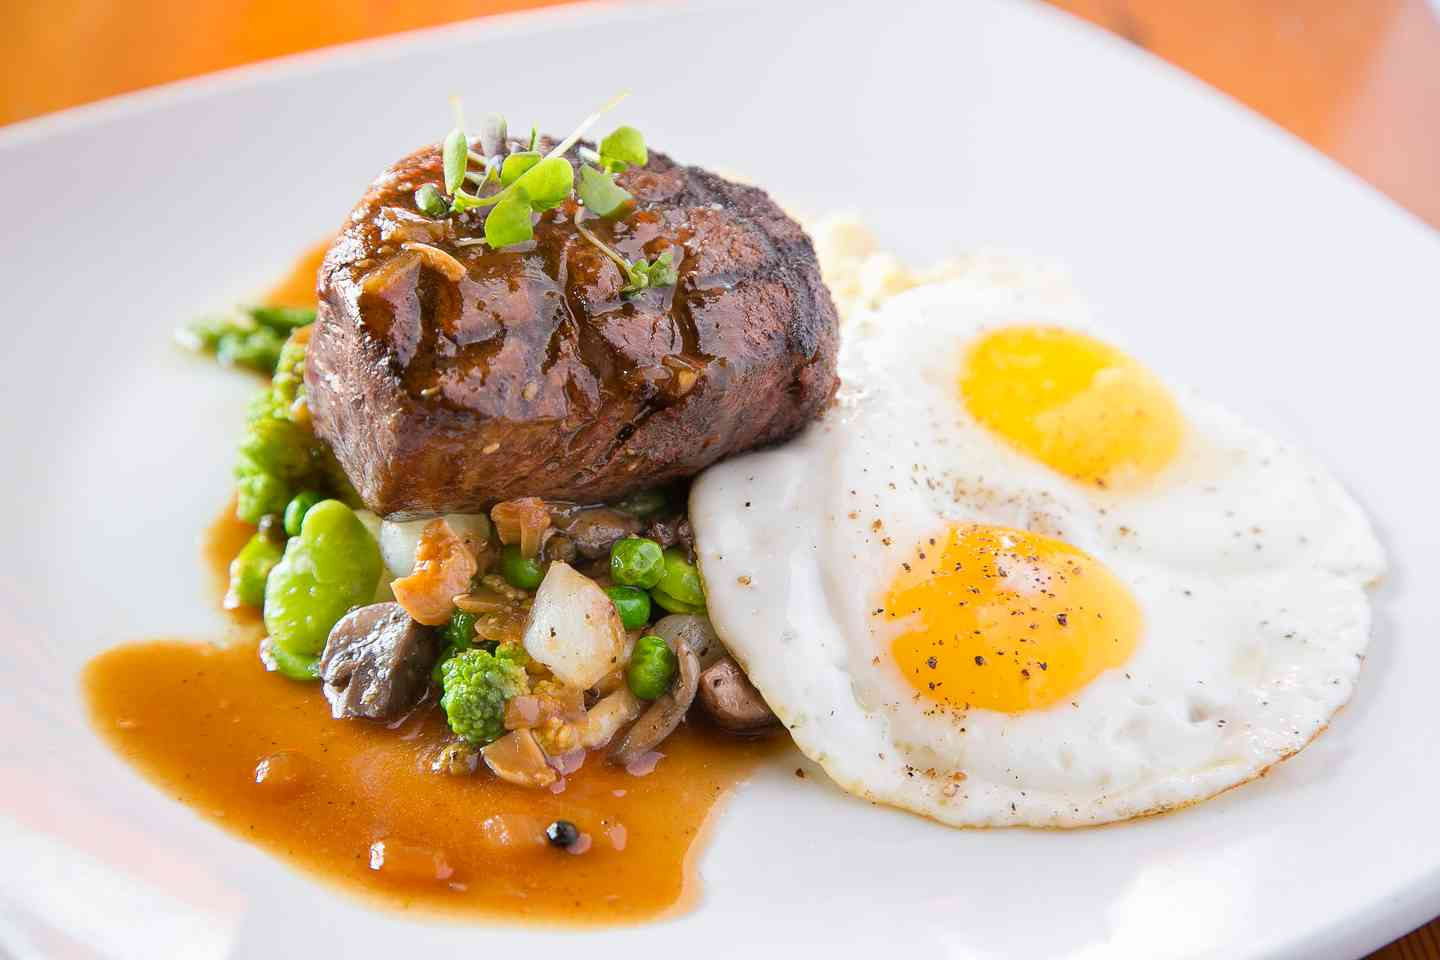 Double R Ranch Filet Mignon Steak & Cage Free Fried Eggs